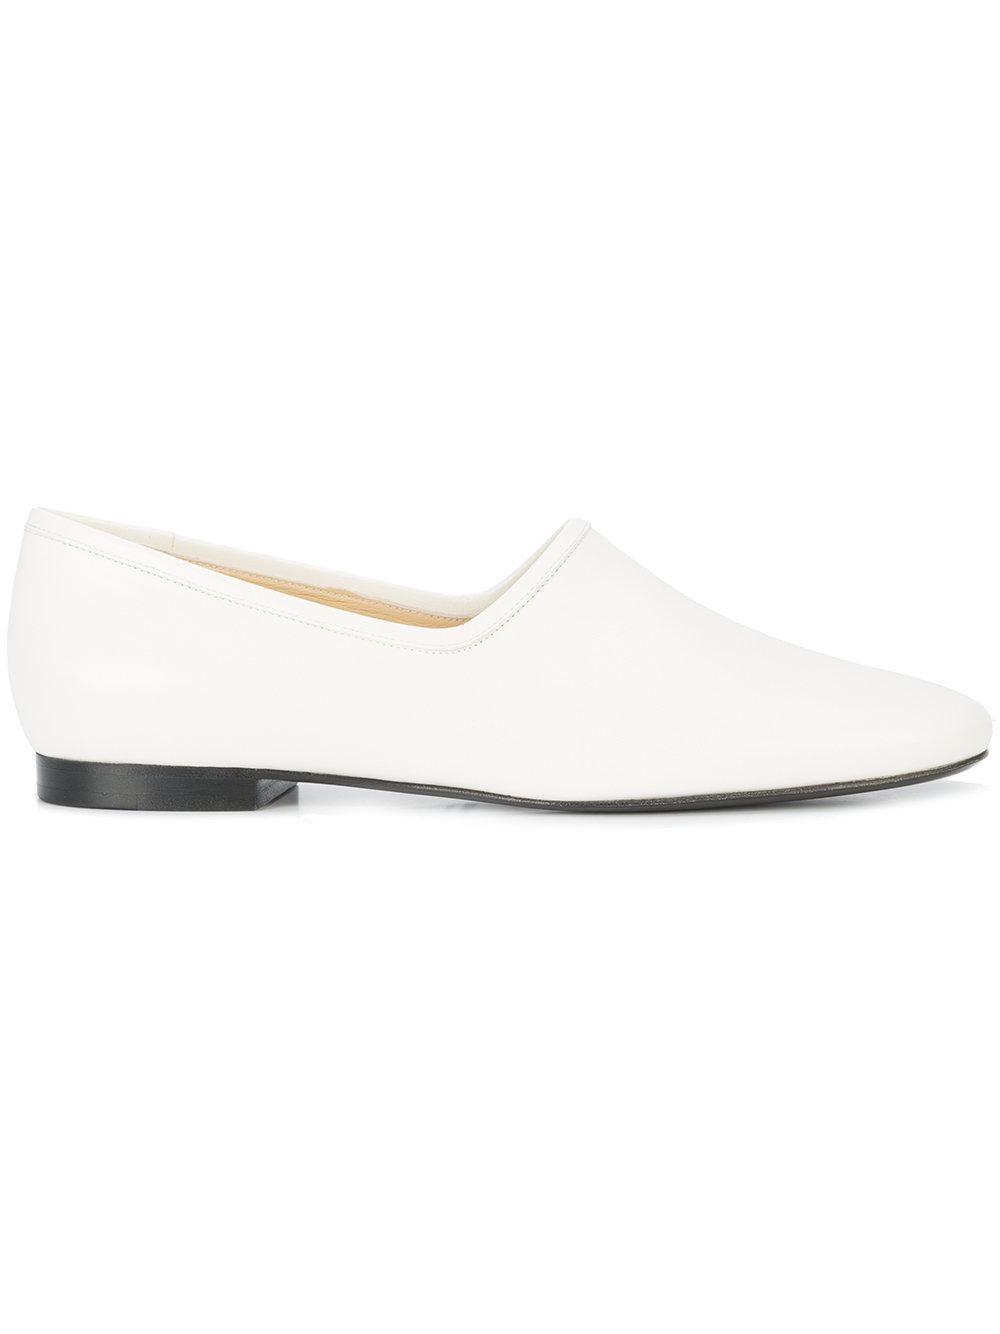 a9efa7d5c14 Lyst - Lemaire Round Toe Slip-on Pumps in Black